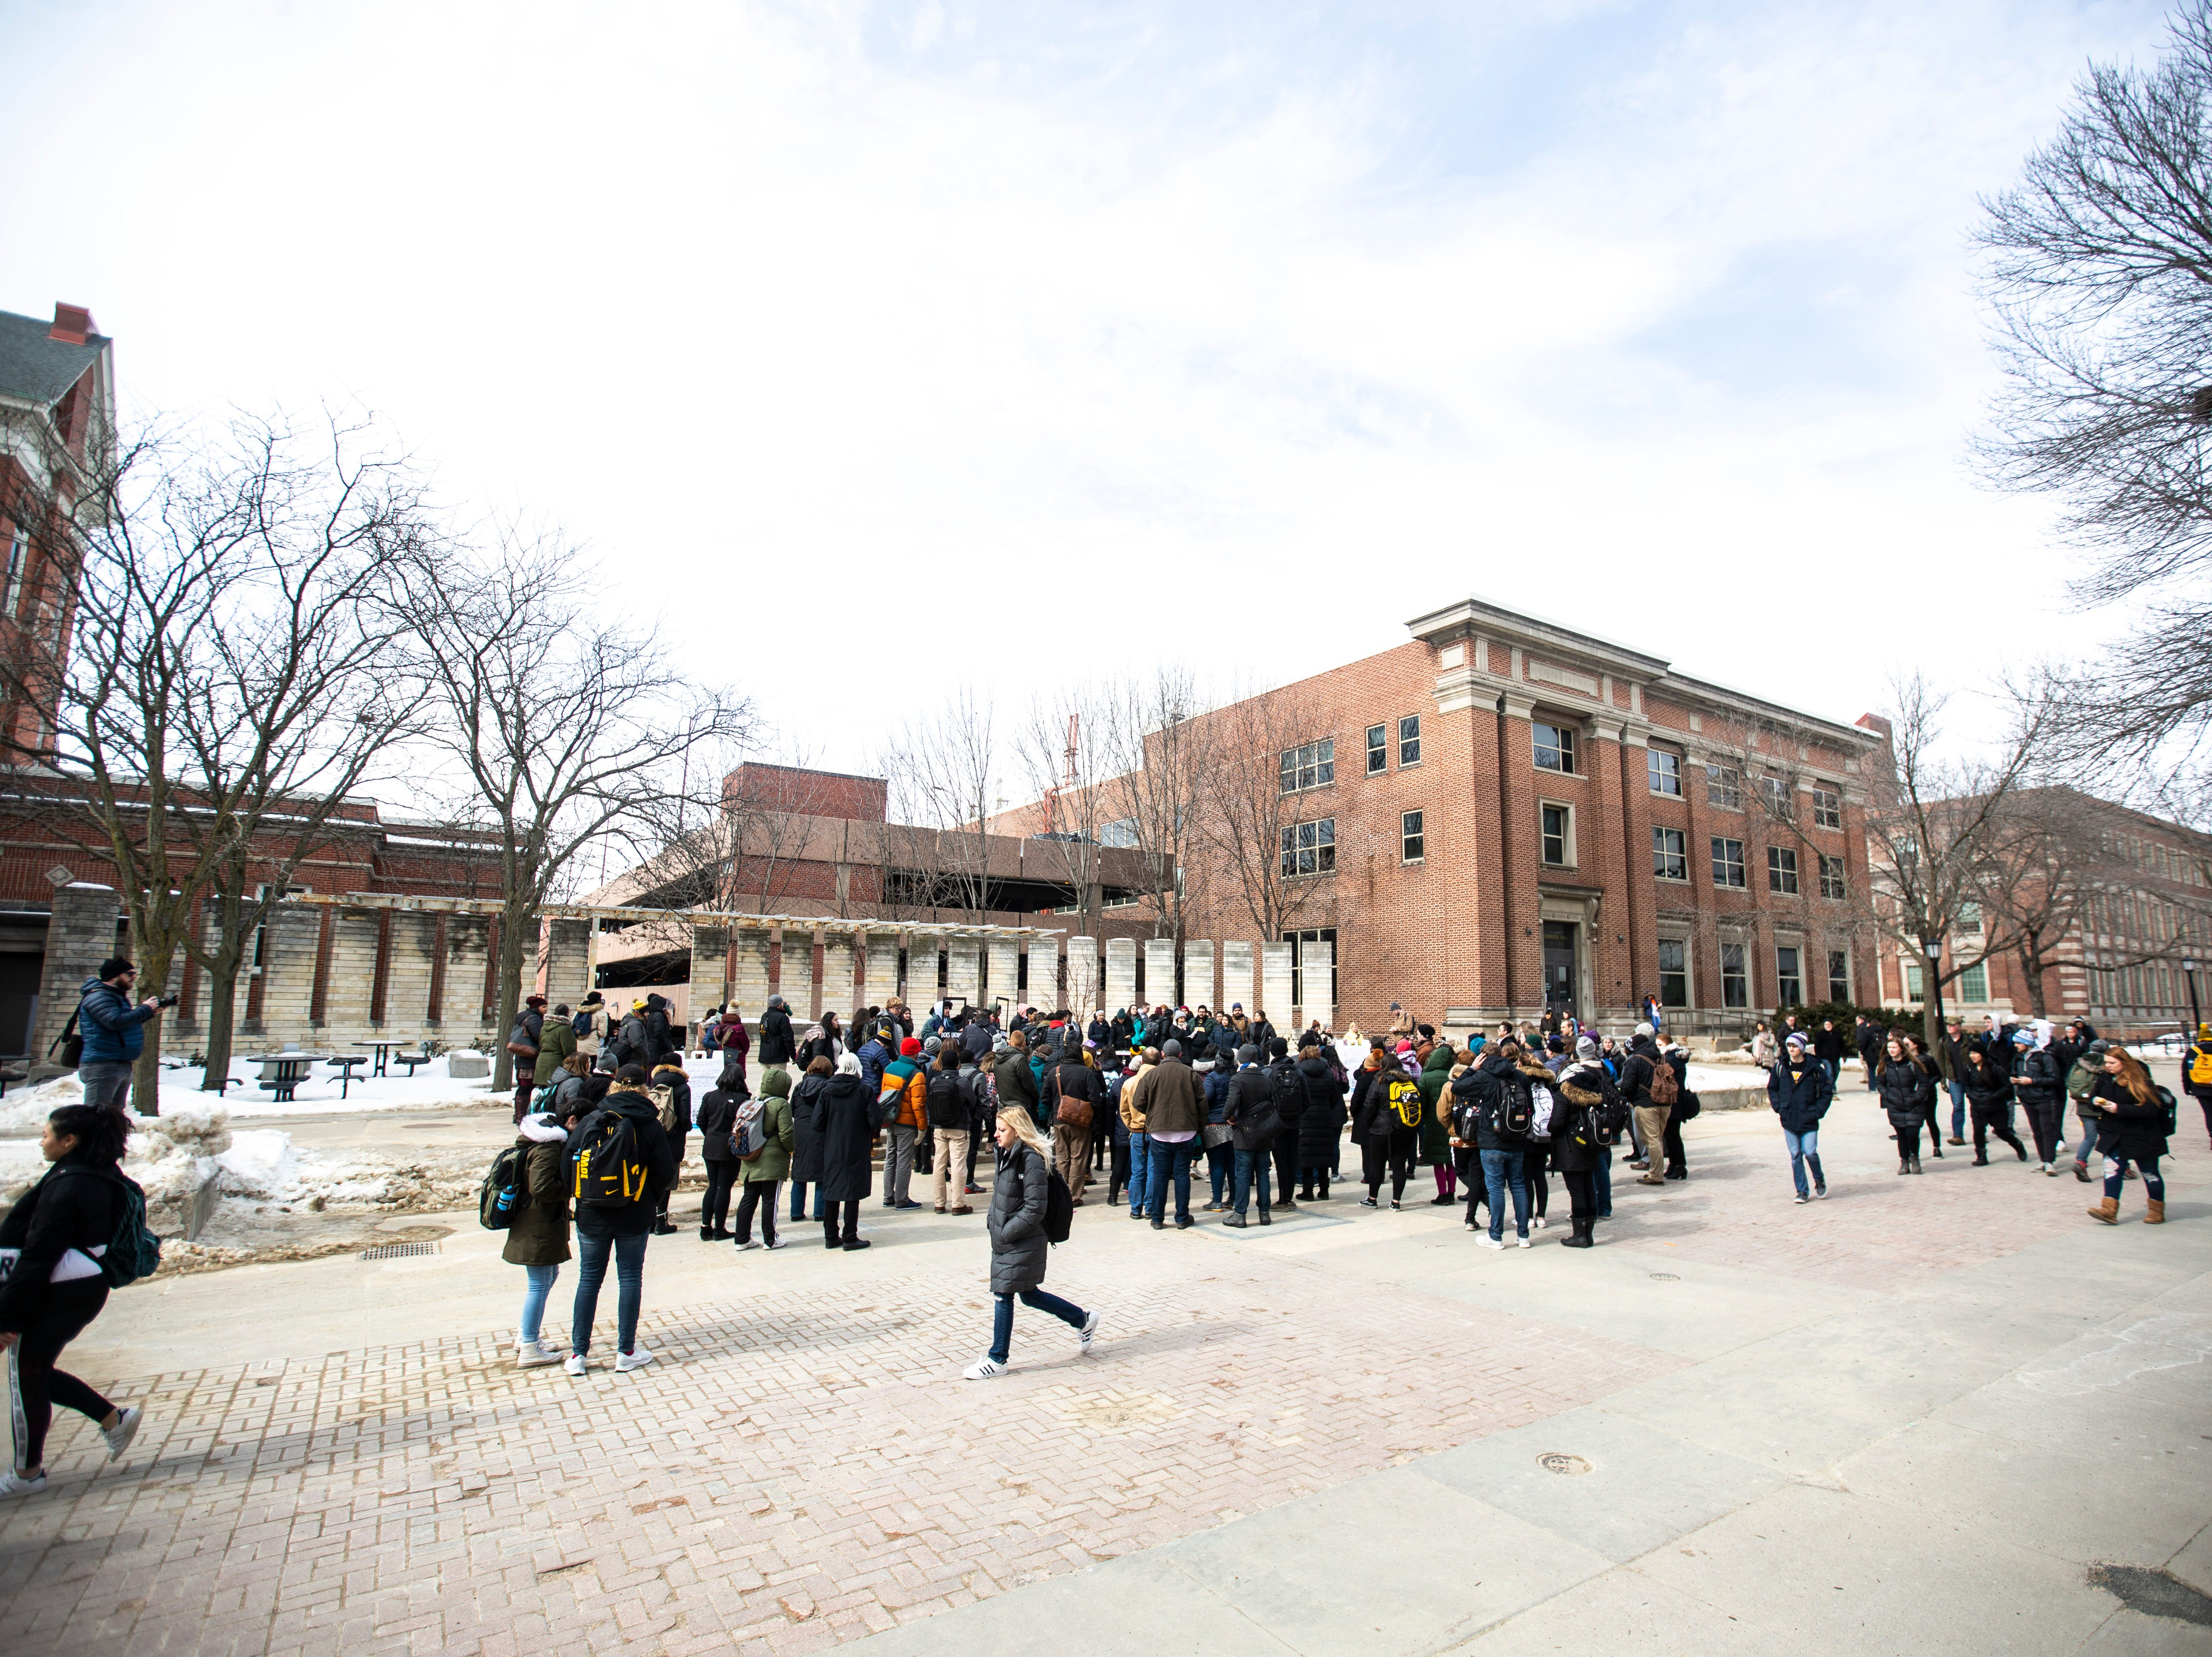 """Students gather during a """"speak out"""" event organized by the """"#DoesUIowaLoveMe"""" group on Thursday, Feb. 28, 2019, along the T. Anne Cleary Walkway on the University of Iowa campus in Iowa City, Iowa."""